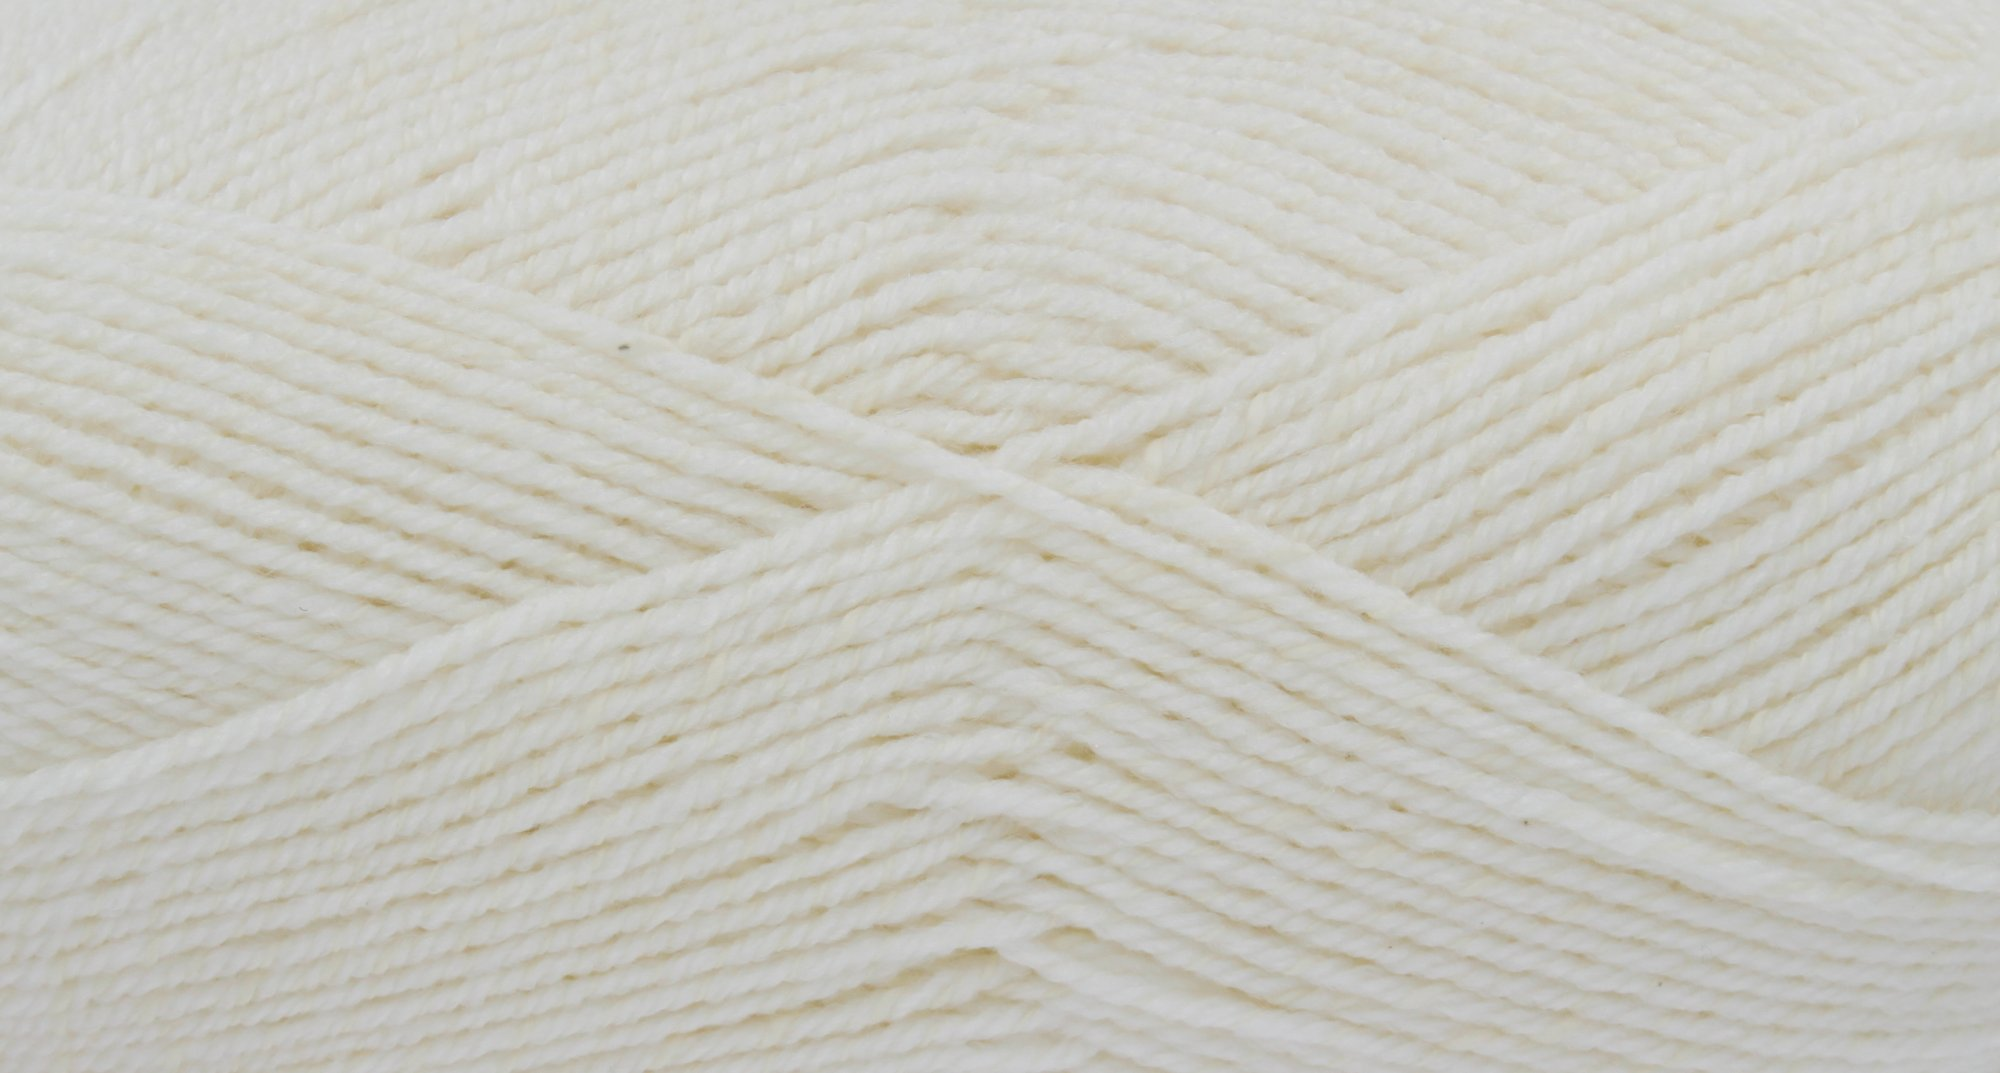 Cotton Top DK 4215 by King Cole Yarn